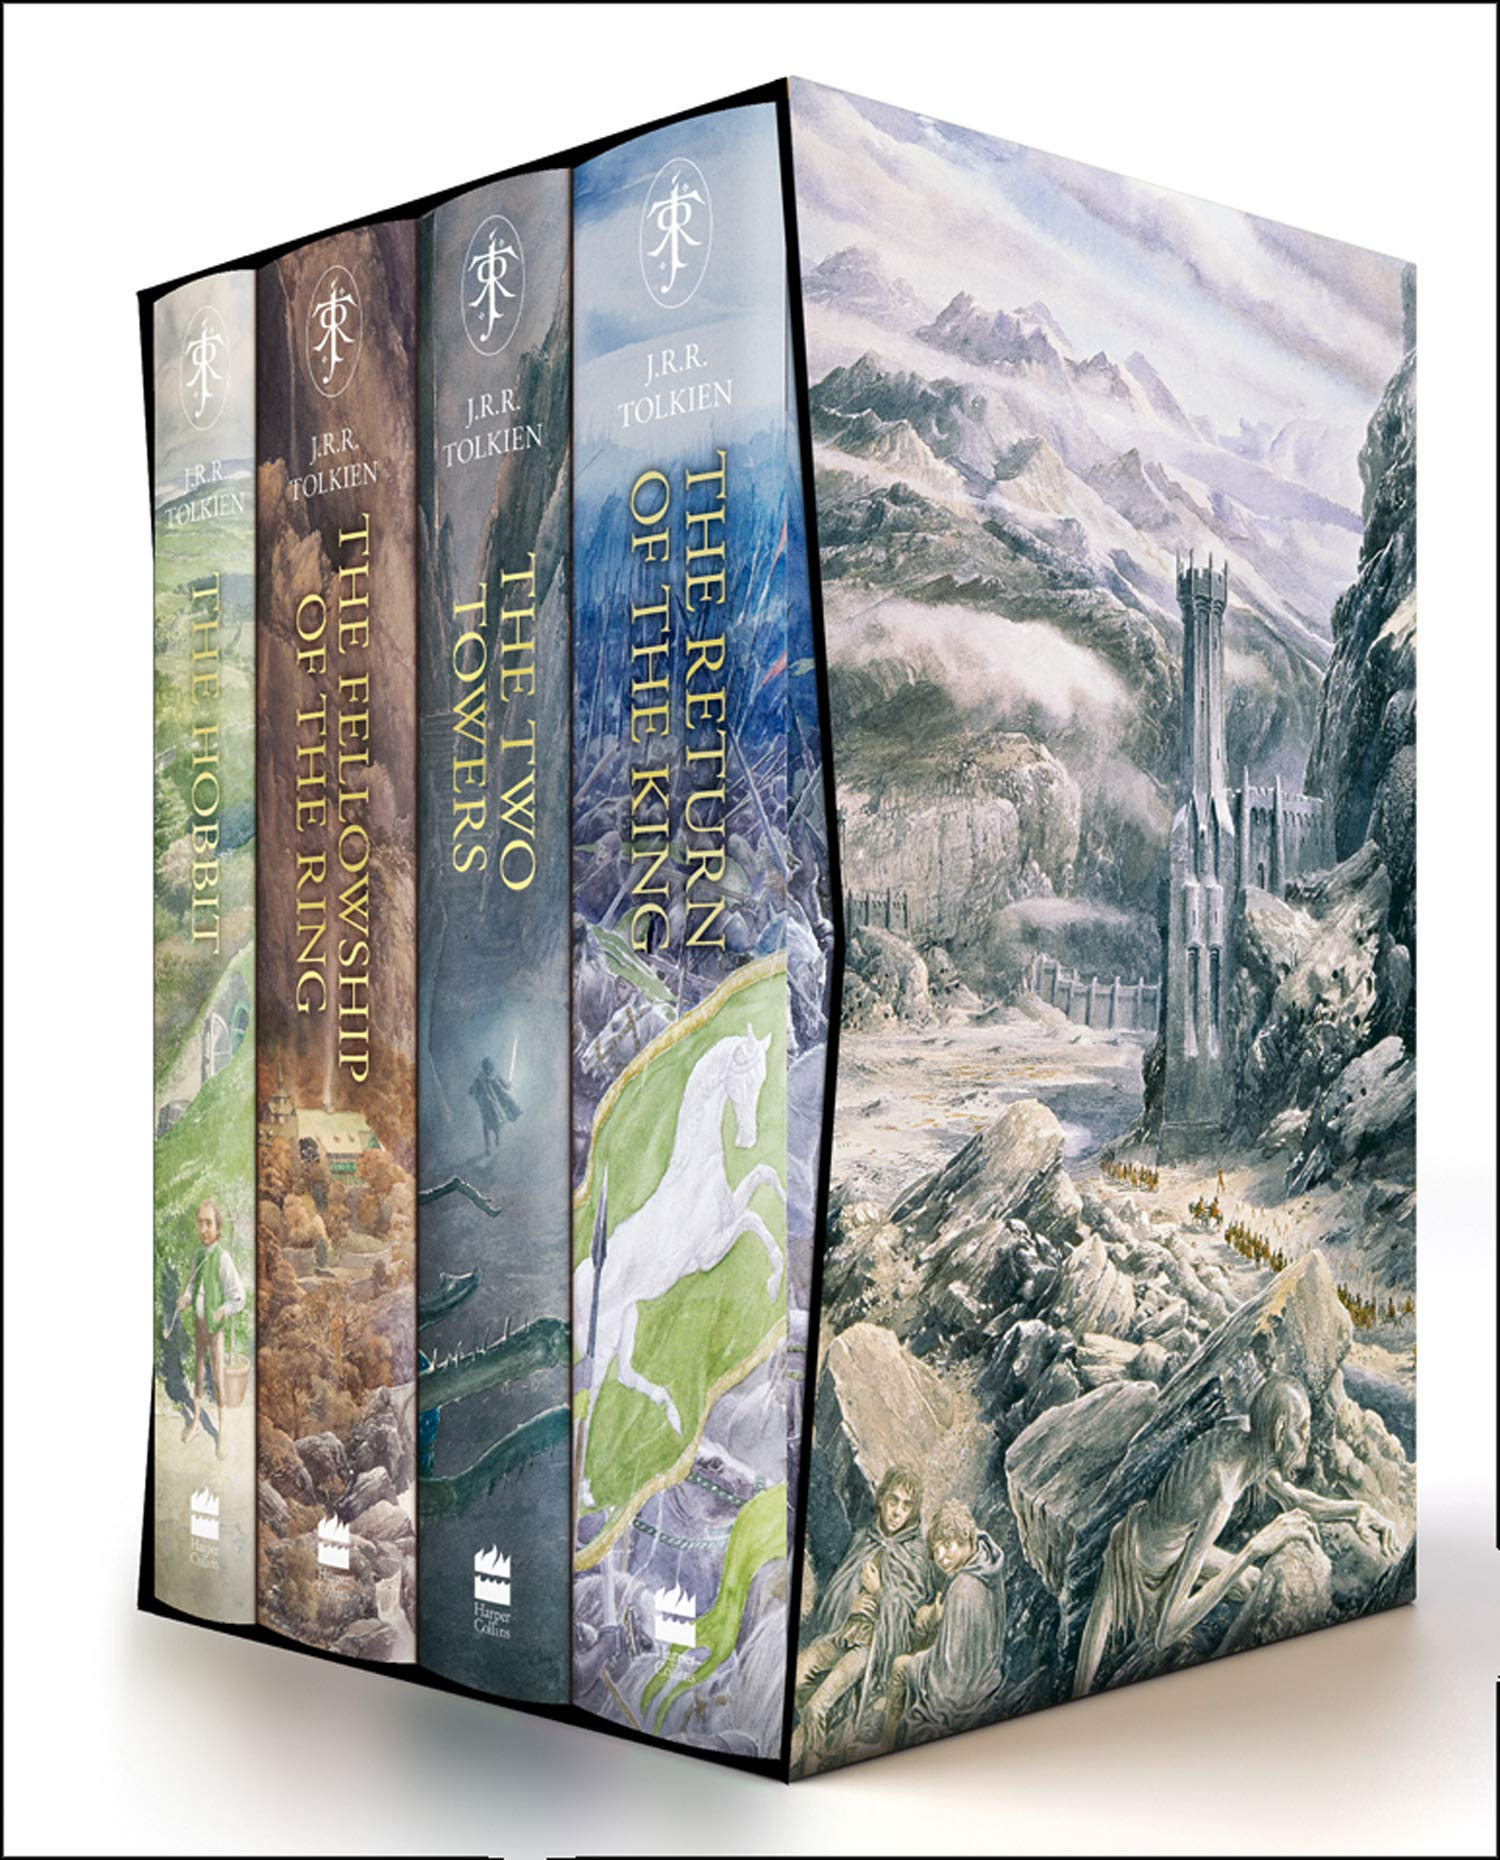 The Hobbit The Lord Of The Rings Boxed Set Tolkien J R R Lee Alan 9780008376109 Books Amazon Ca